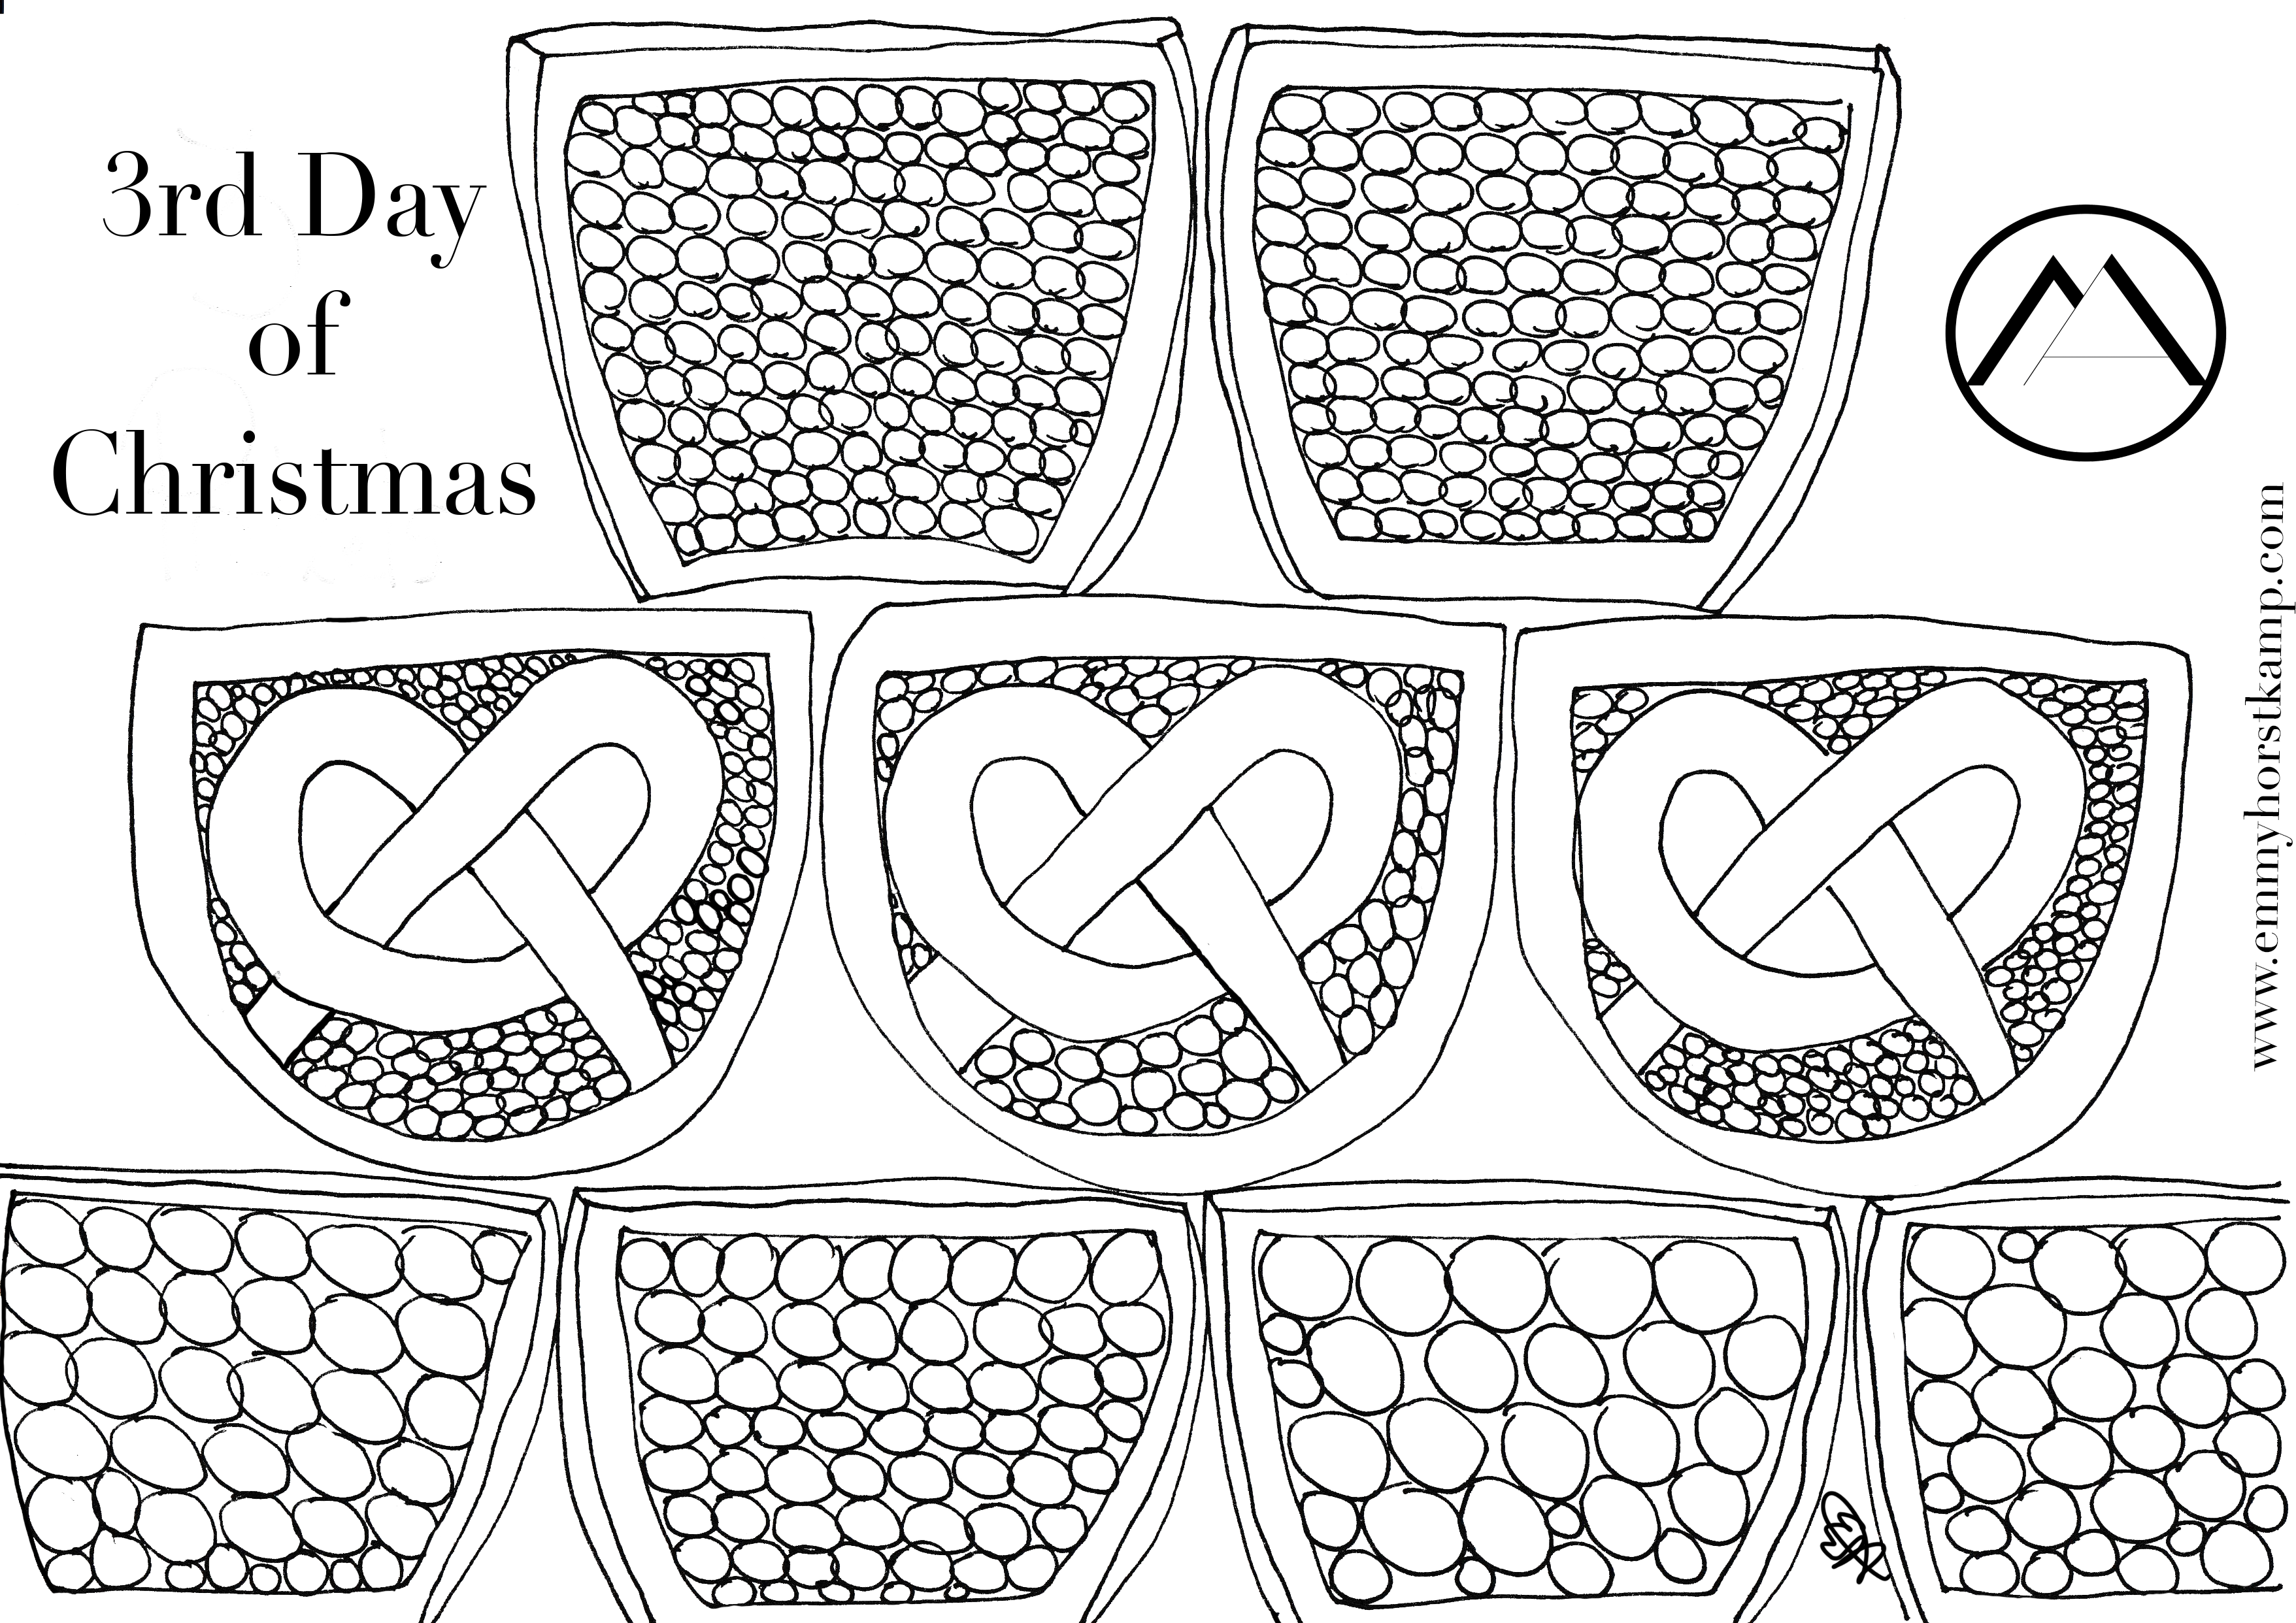 12 Days of Christmas in Munich Colouring Pages | Munich Artists